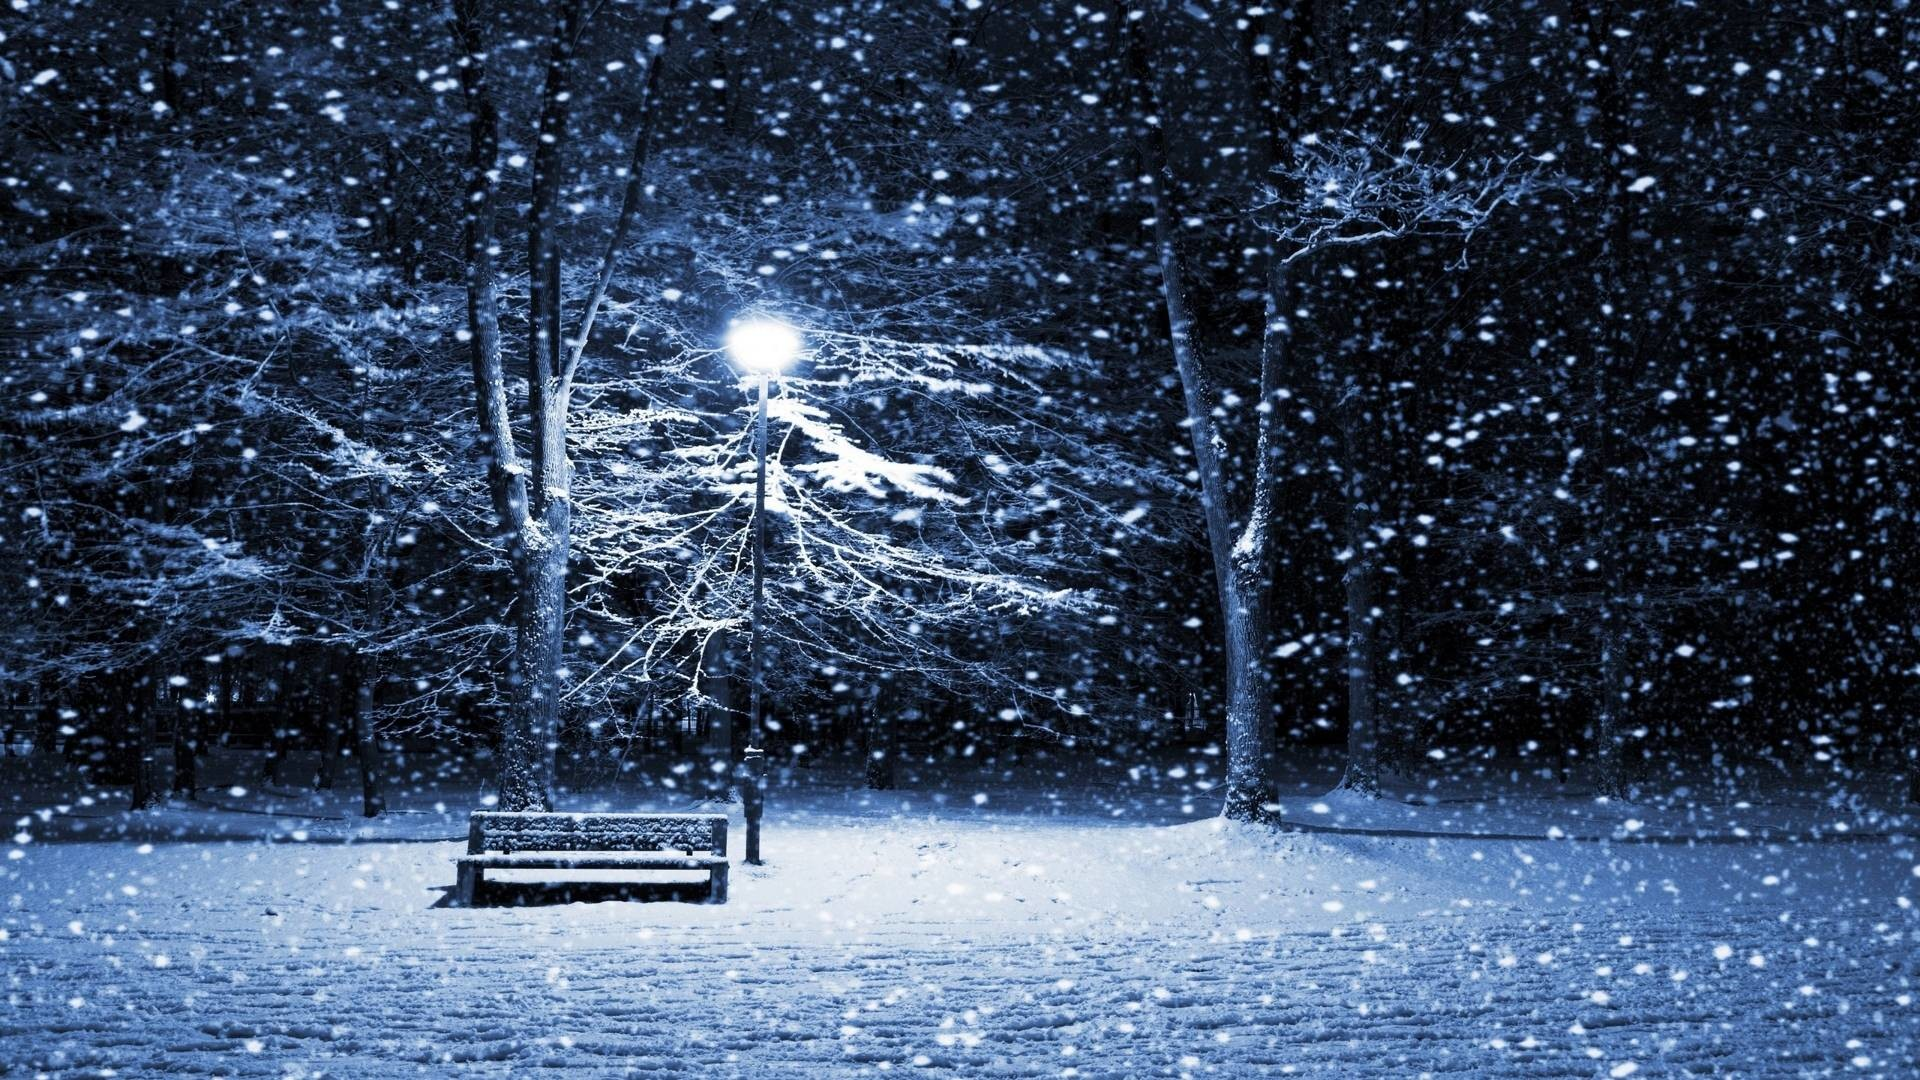 snowy christmas scenes wallpaper (48+ images)